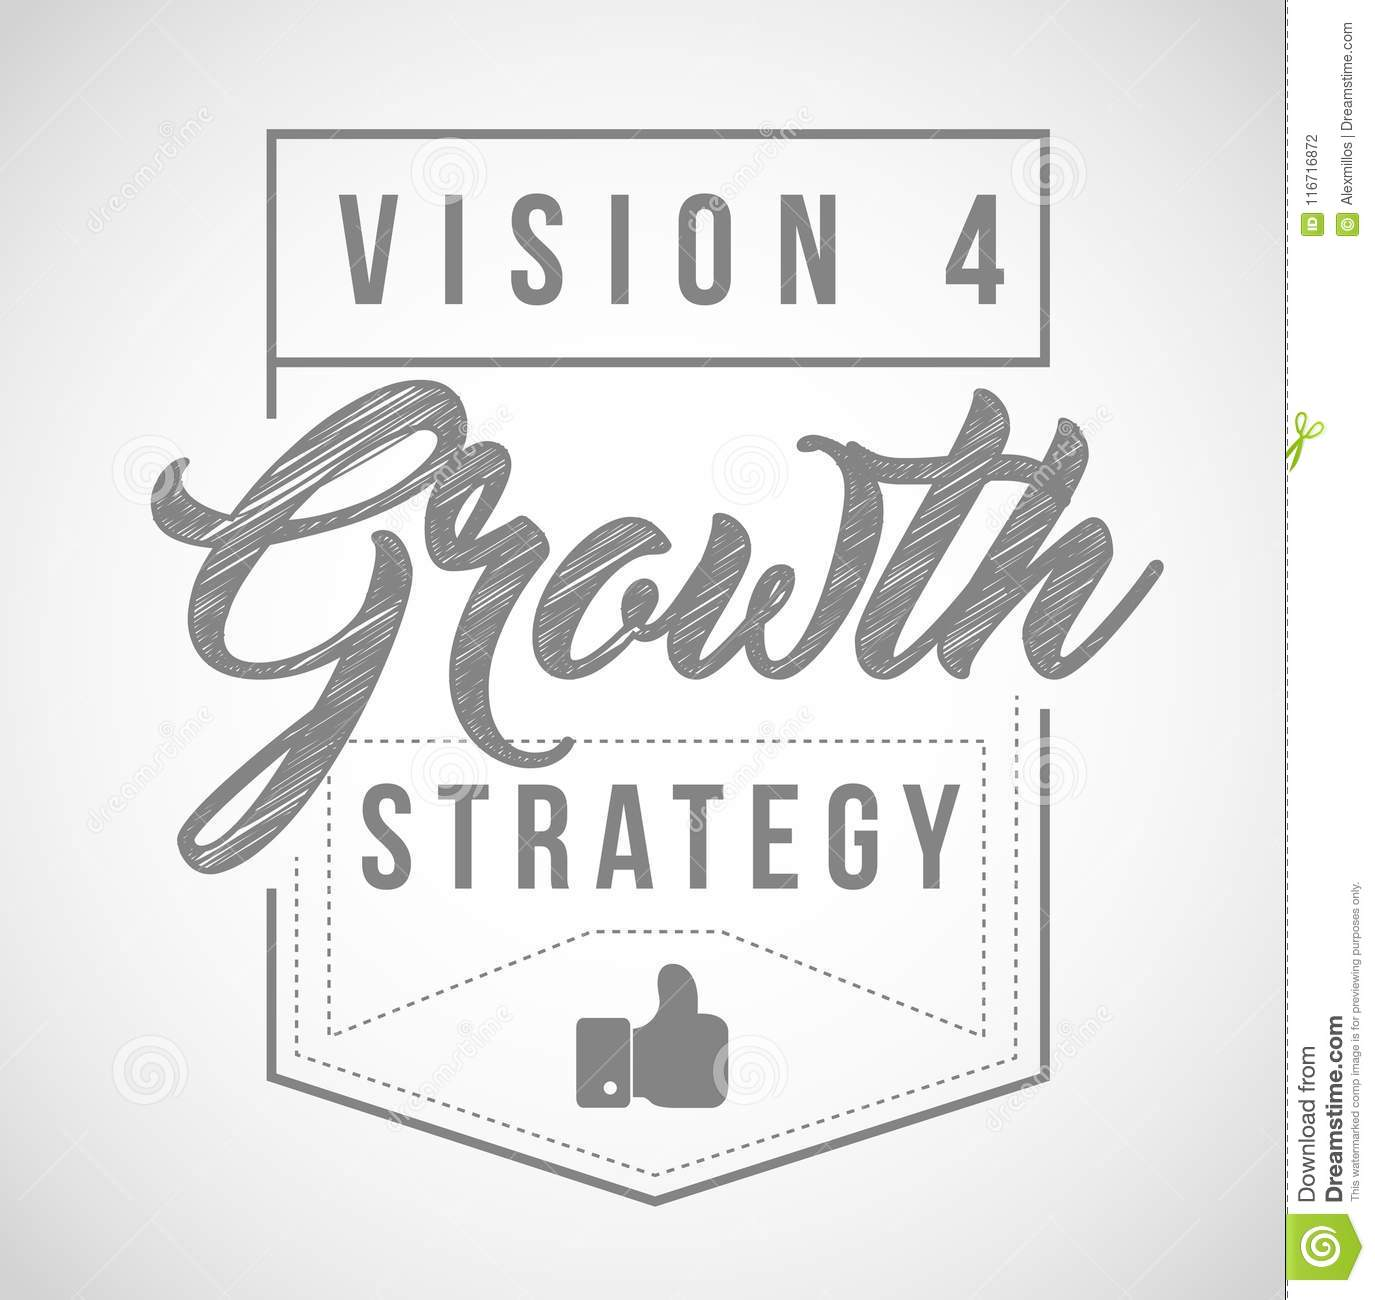 Vision for growth strategy seal in line graphics